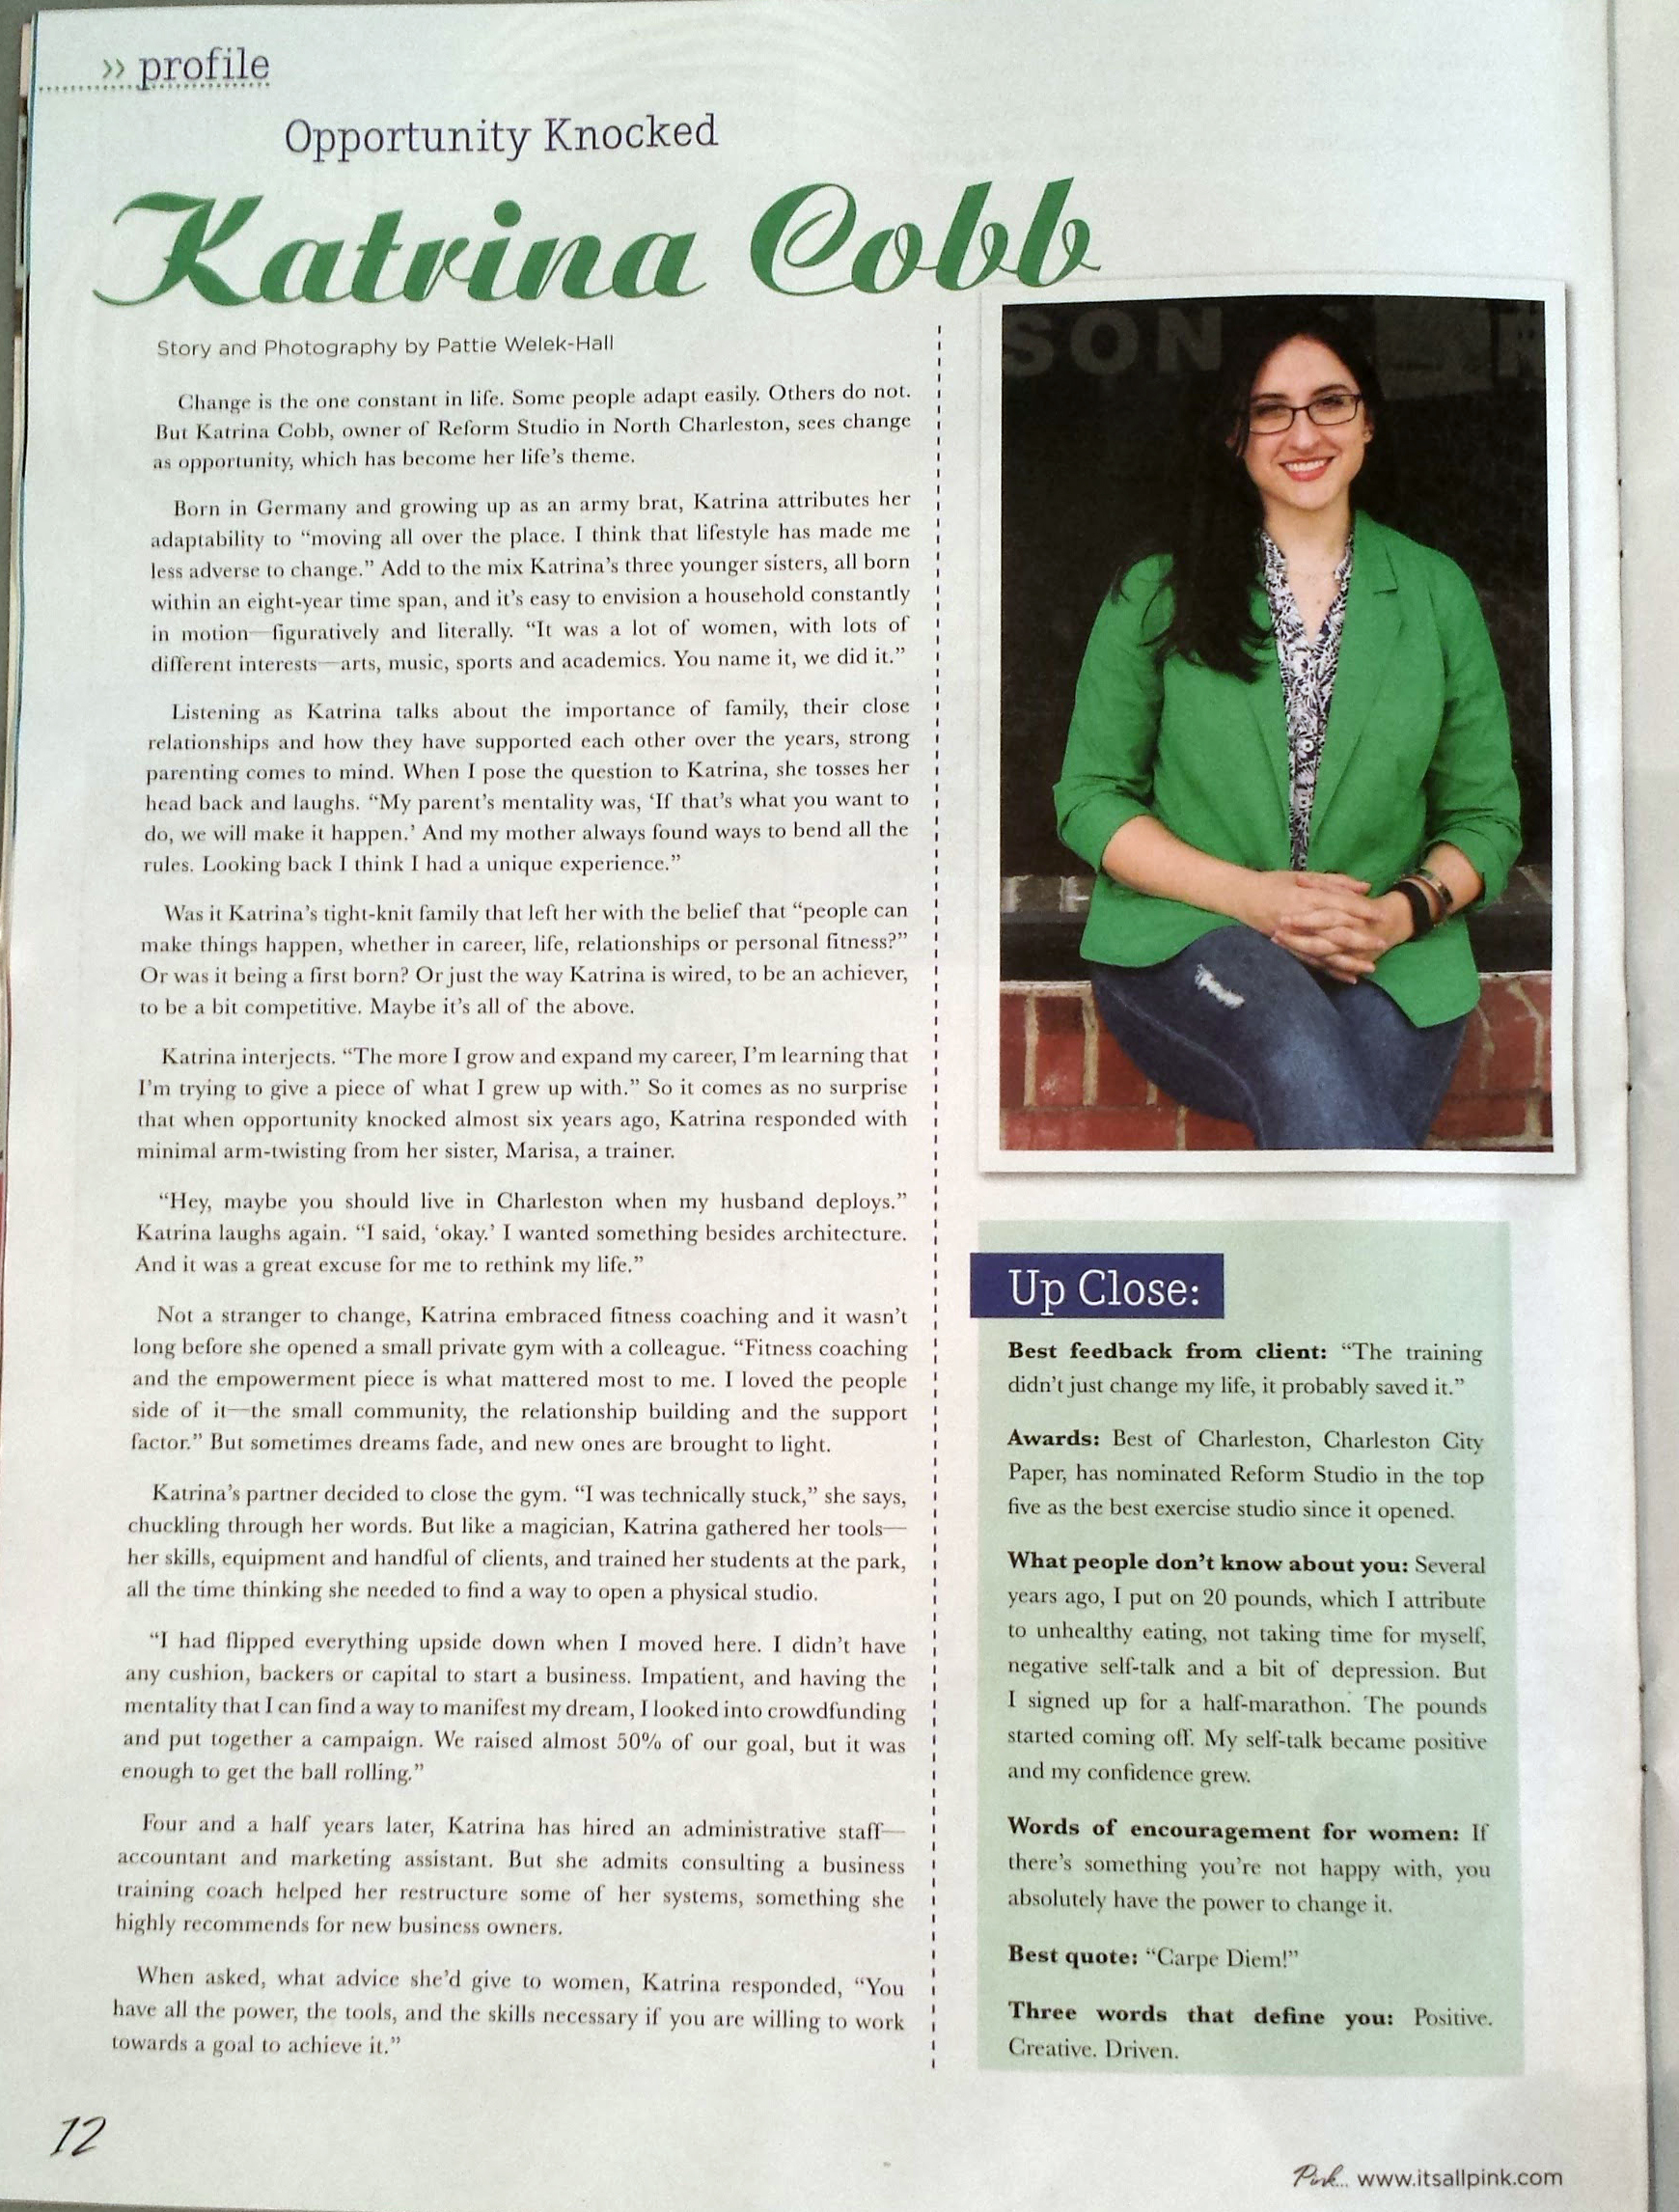 Katrina Cobb Pink Magazine Featured Woman